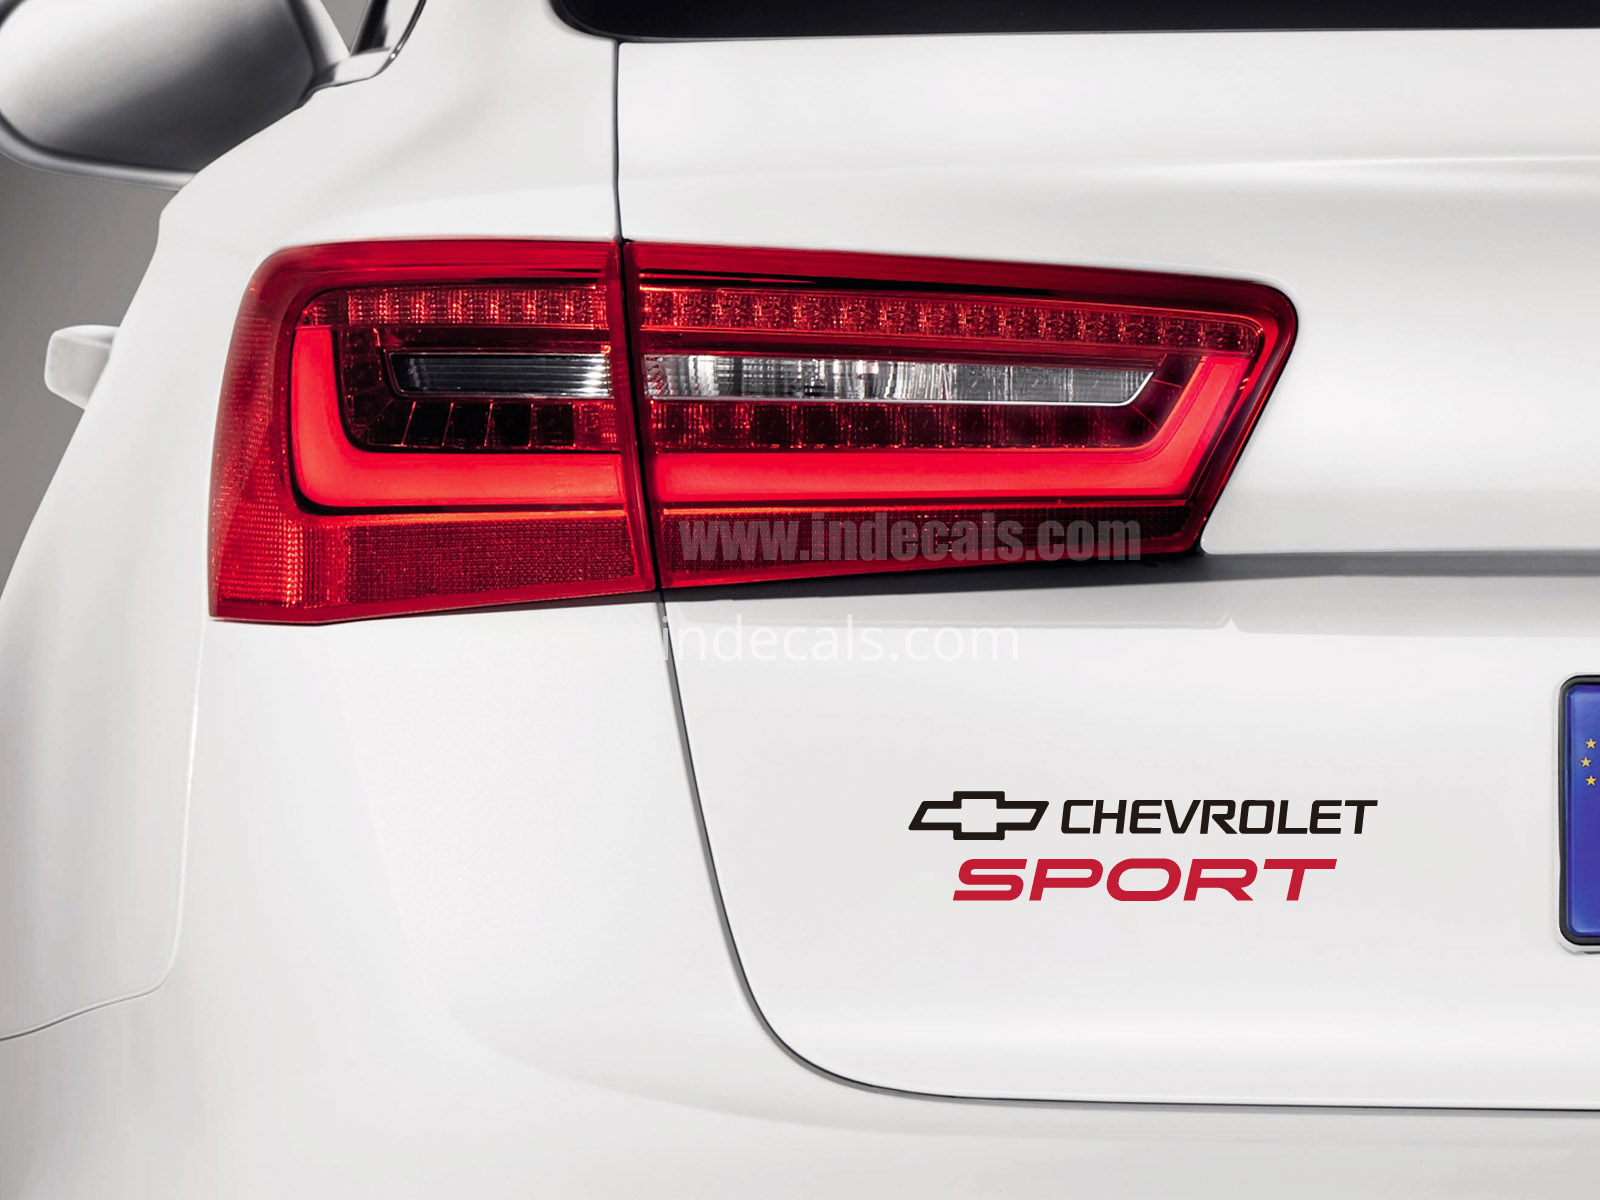 1 x Chevrolet Sports Sticker for Trunk - Black & Red